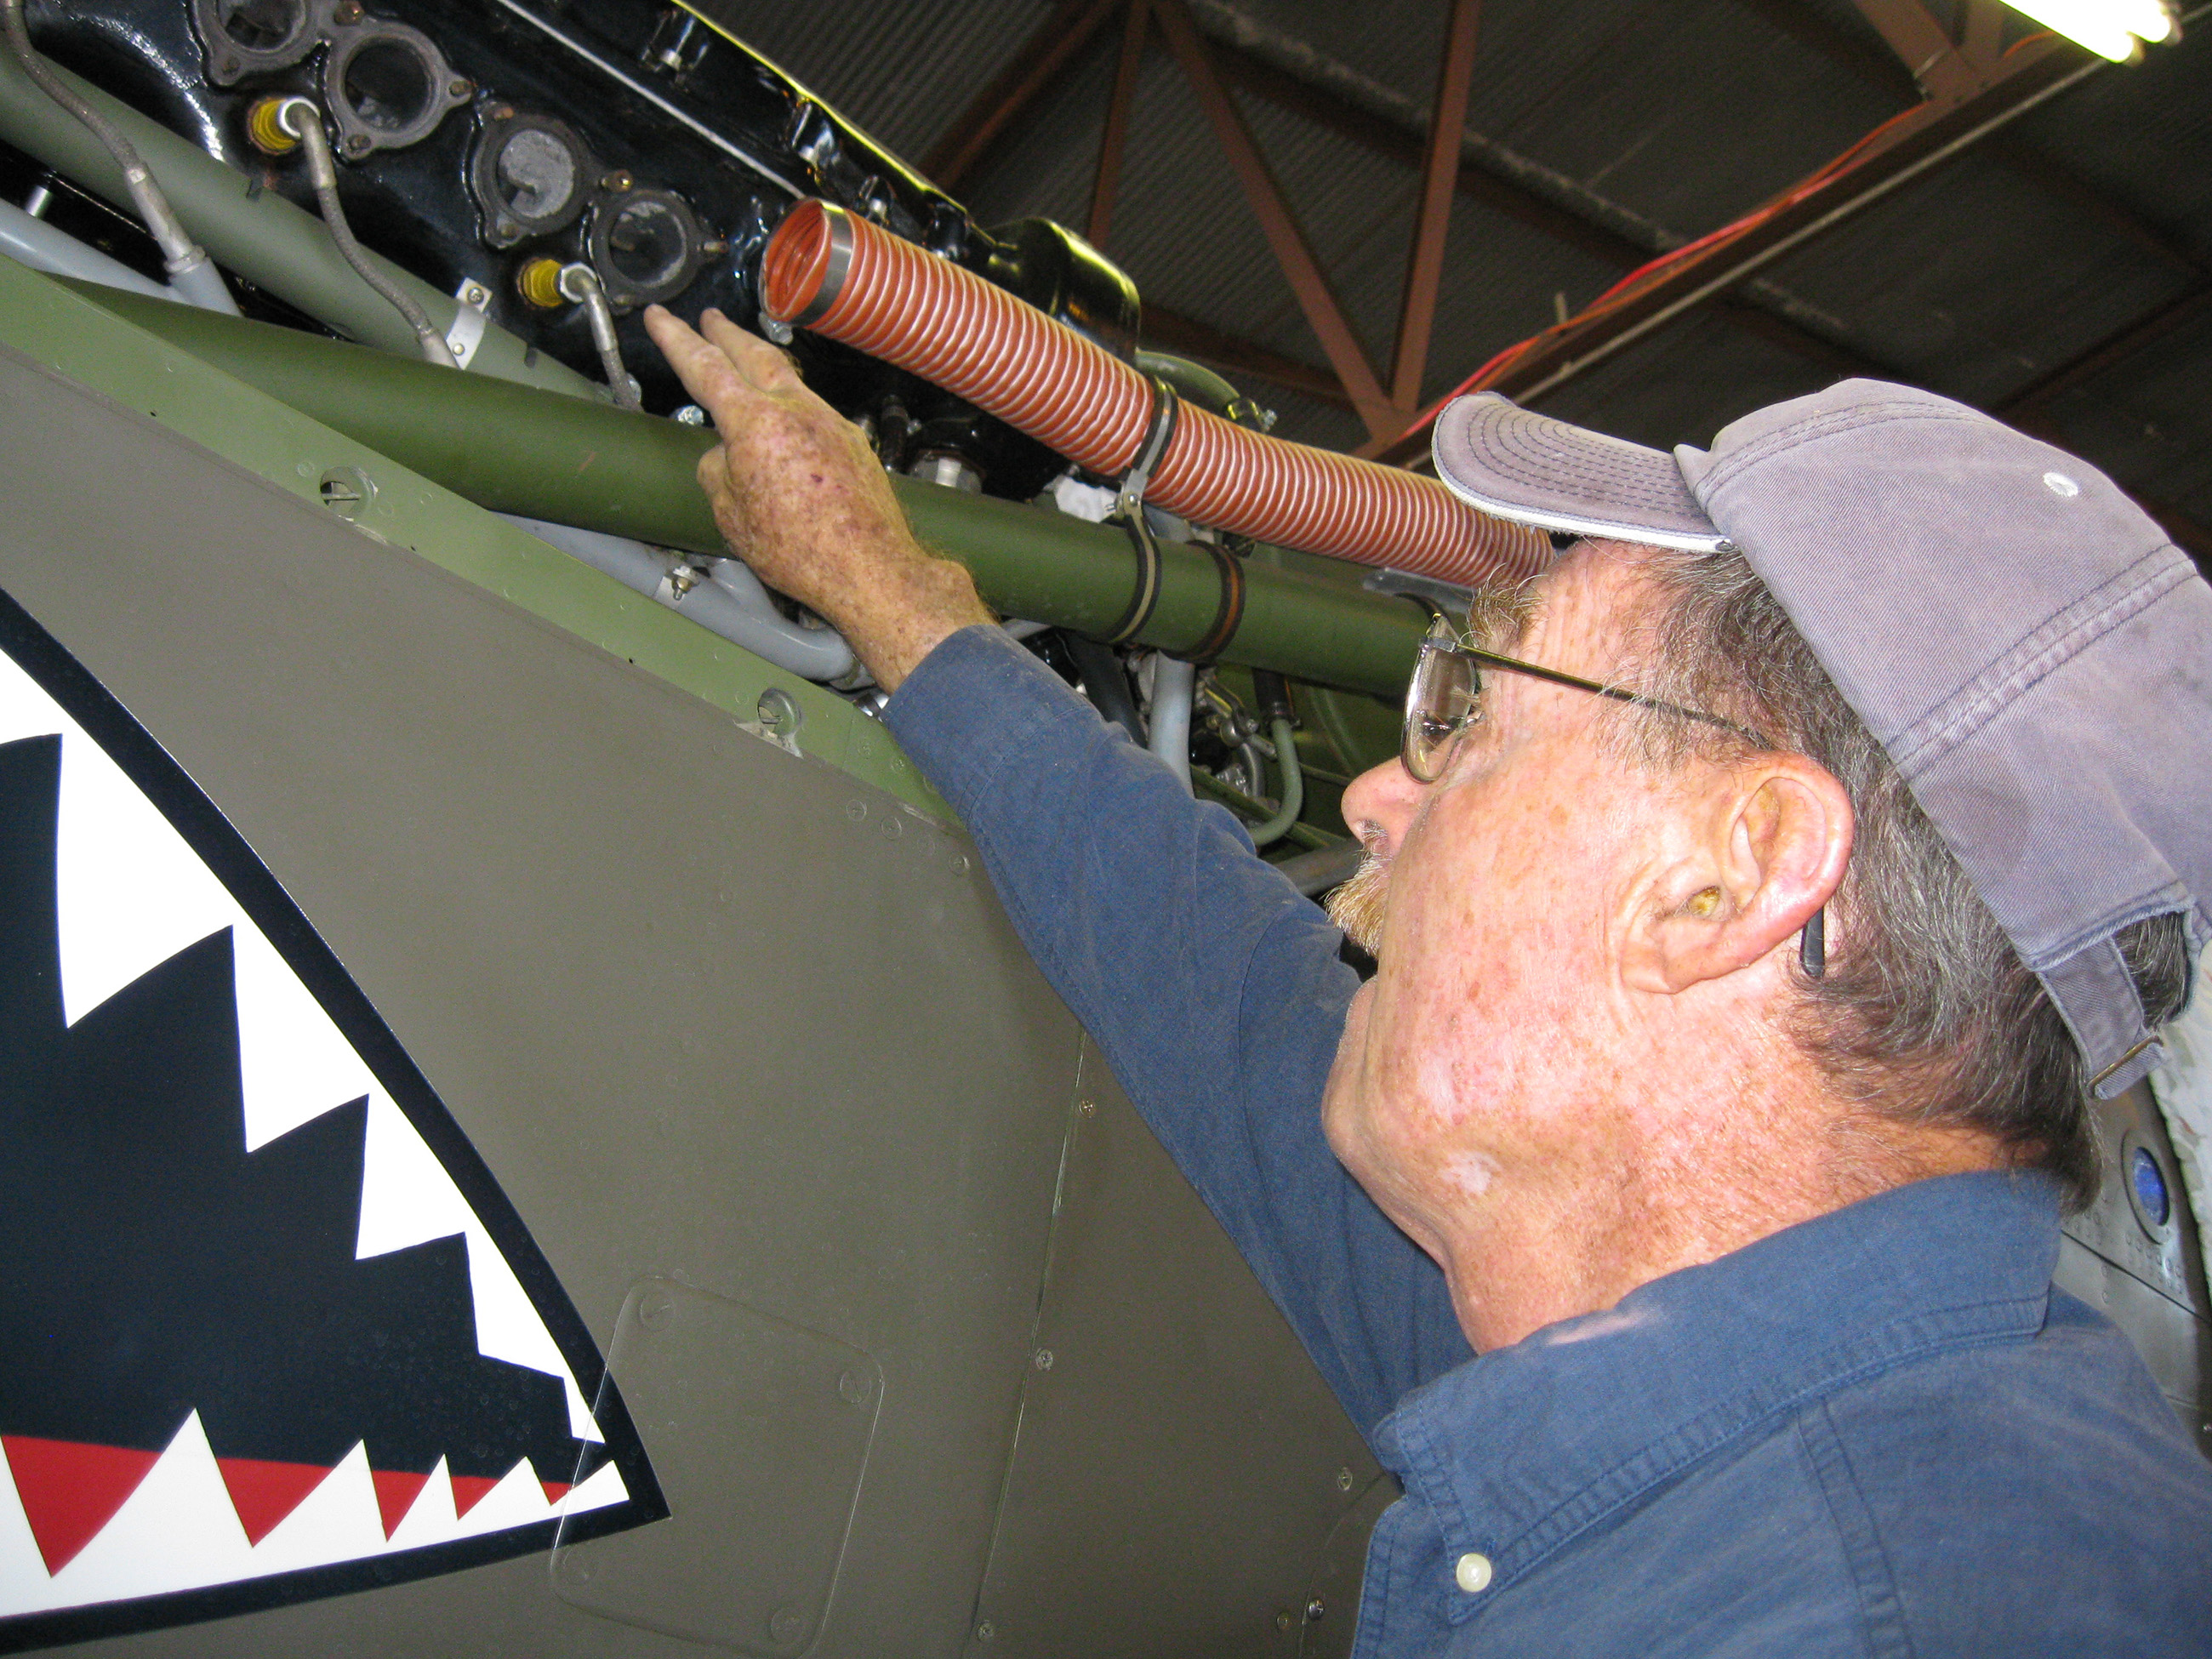 Tom Reilly working on the Allison V-1710 engine in Don Brooks P-40 Warhawk back in 2009. (photo via Matt Jolley)